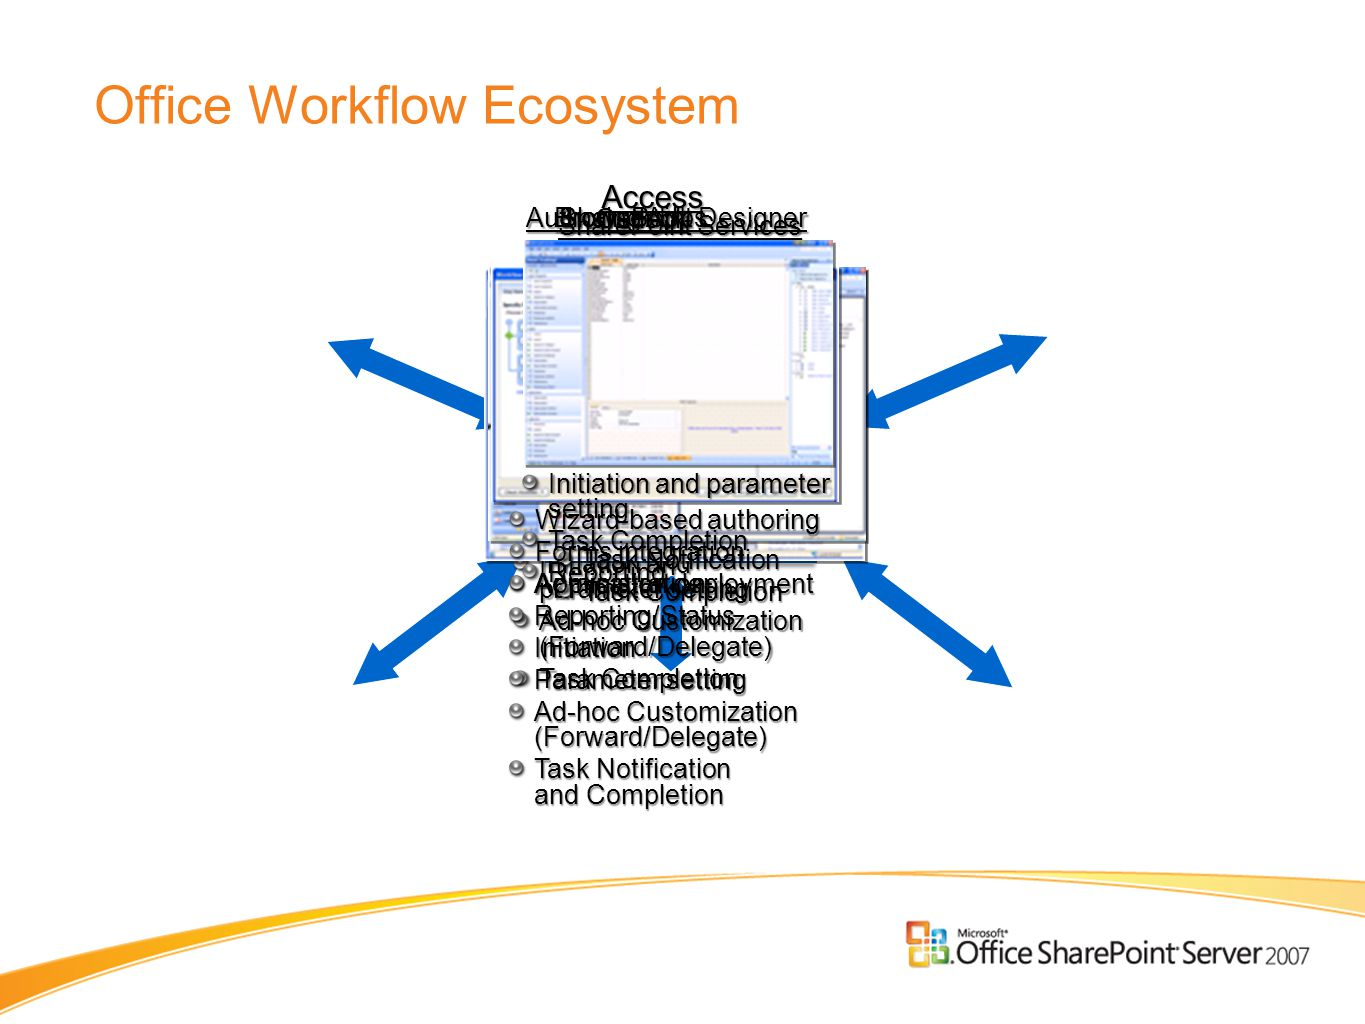 Office Workflow Ecosystem SharePoint Services WFWFWebServiceWebService HistoryListHistoryListReporting & Admin Reporting SourceListSourceListTaskListTaskList Initiation and parameter setting Ad-hoc Customization (Forward/Delegate) Task Completion Authoring Apps Browser UI AdministrationReporting/StatusInitiation Parameter setting Ad-hoc Customization (Forward/Delegate) Task Notification and Completion Outlook Task Notification Task Completion SharePoint Designer Wizard-based authoring Forms integration Application deployment Access Initiation and parameter setting Task Completion Reporting